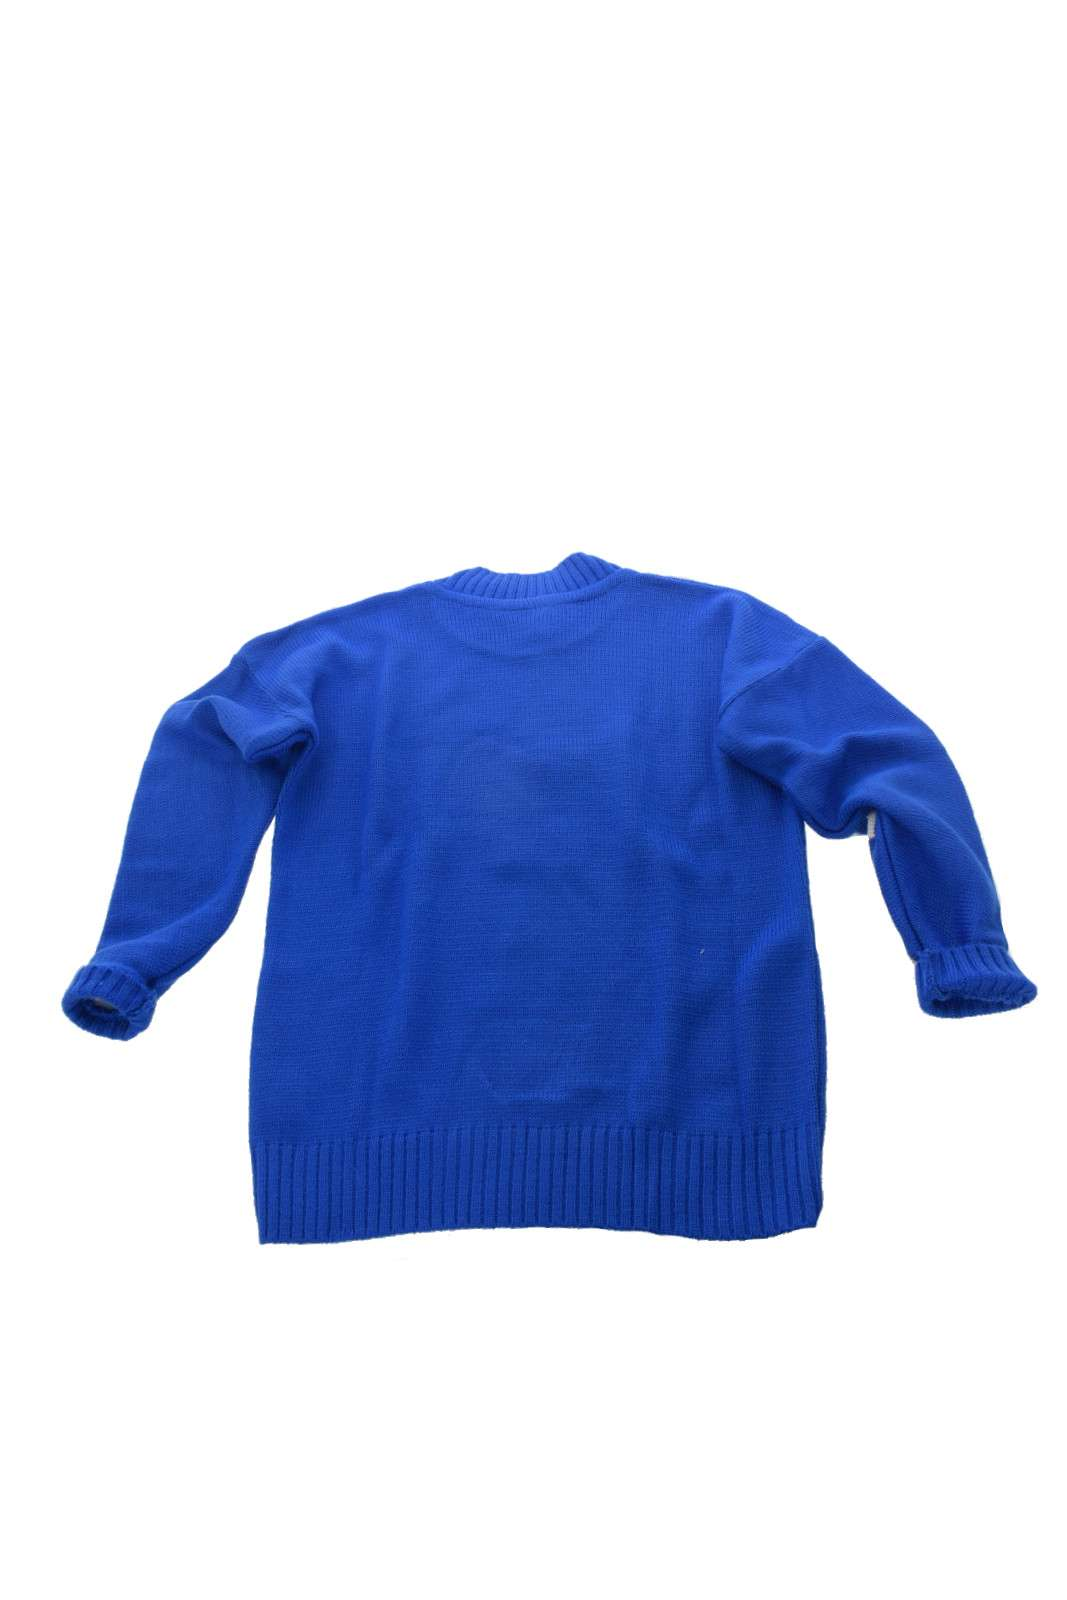 https://www.parmax.com/media/catalog/product/a/i/AI-outlet_parmax-maglia-bambino-parental%20advisory-ad50b-B.jpg